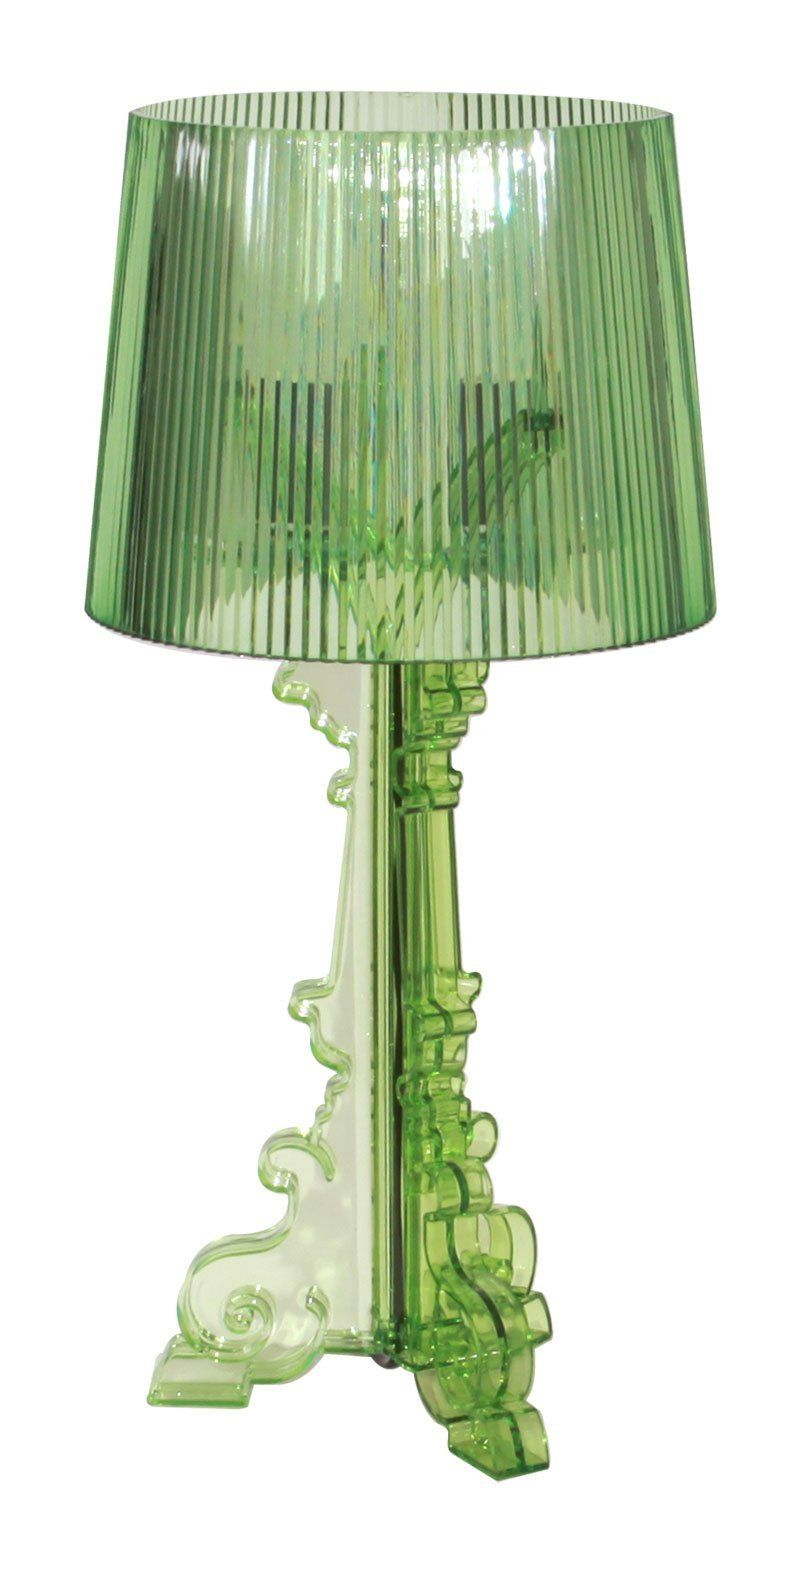 Green kartell ferruccio laviani bourgie table lamp for Ferruccio laviani bourgie lamp